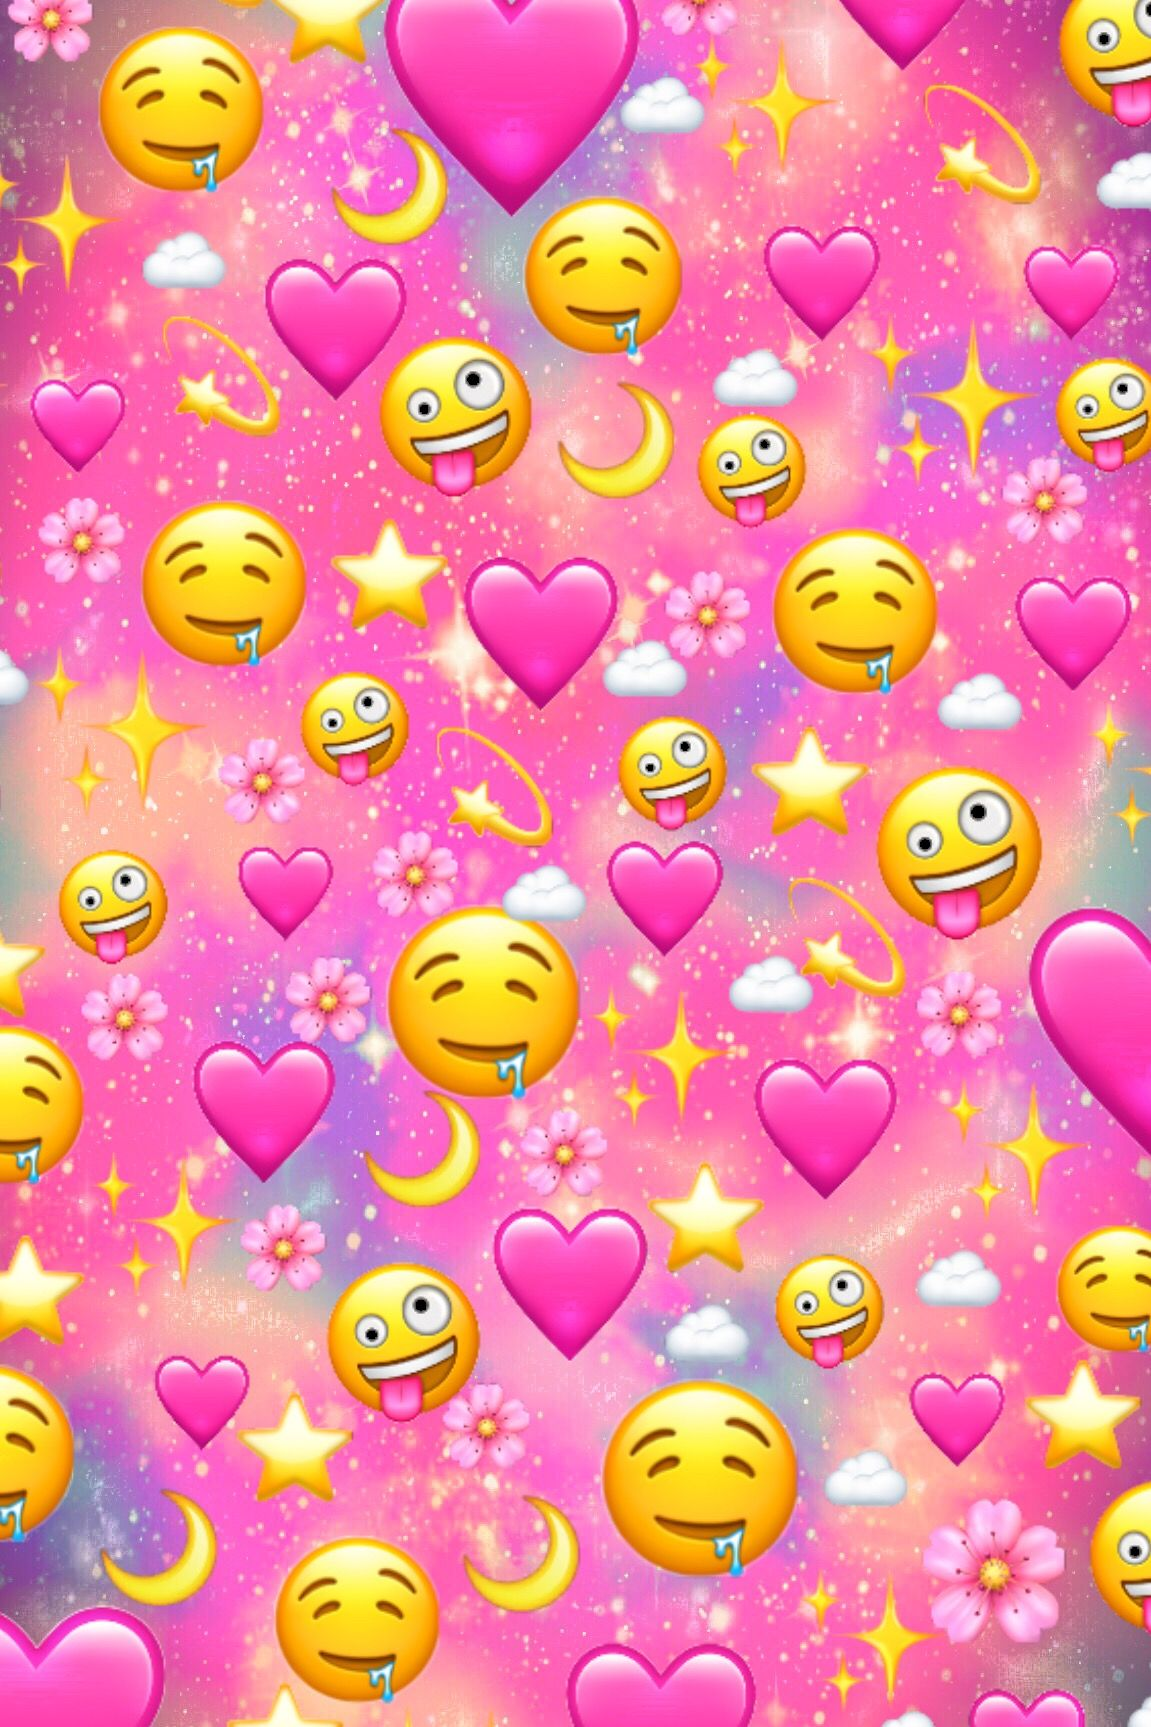 Love Hearts And Emojis Galaxy Wallpaper (With images